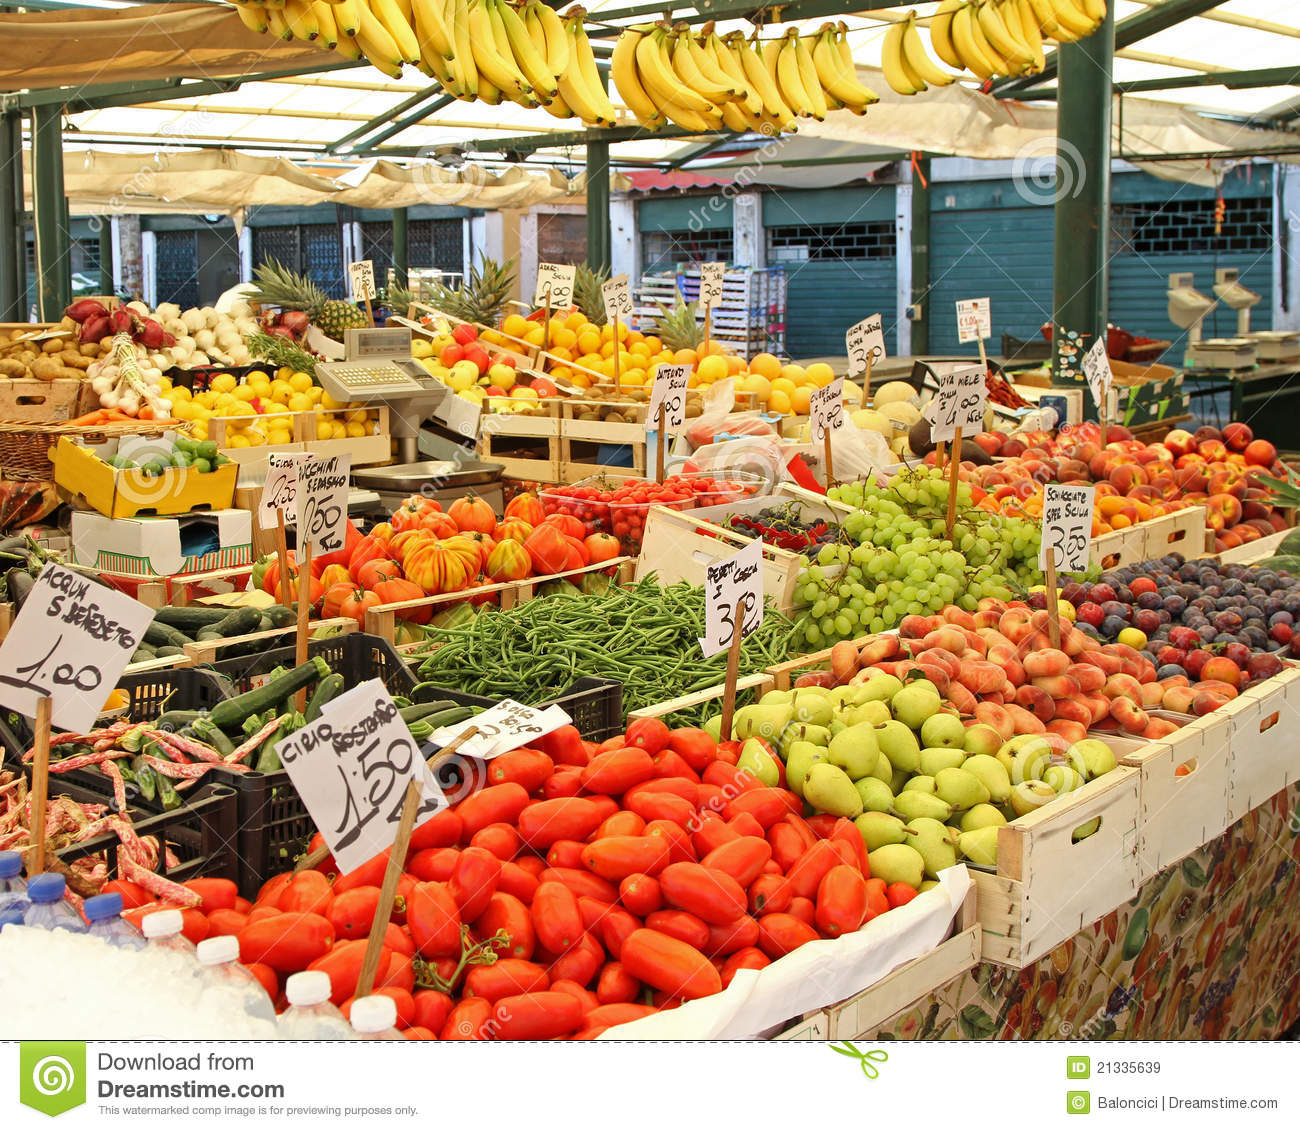 Big farmers market stall filled with organic fruits and vegetables.